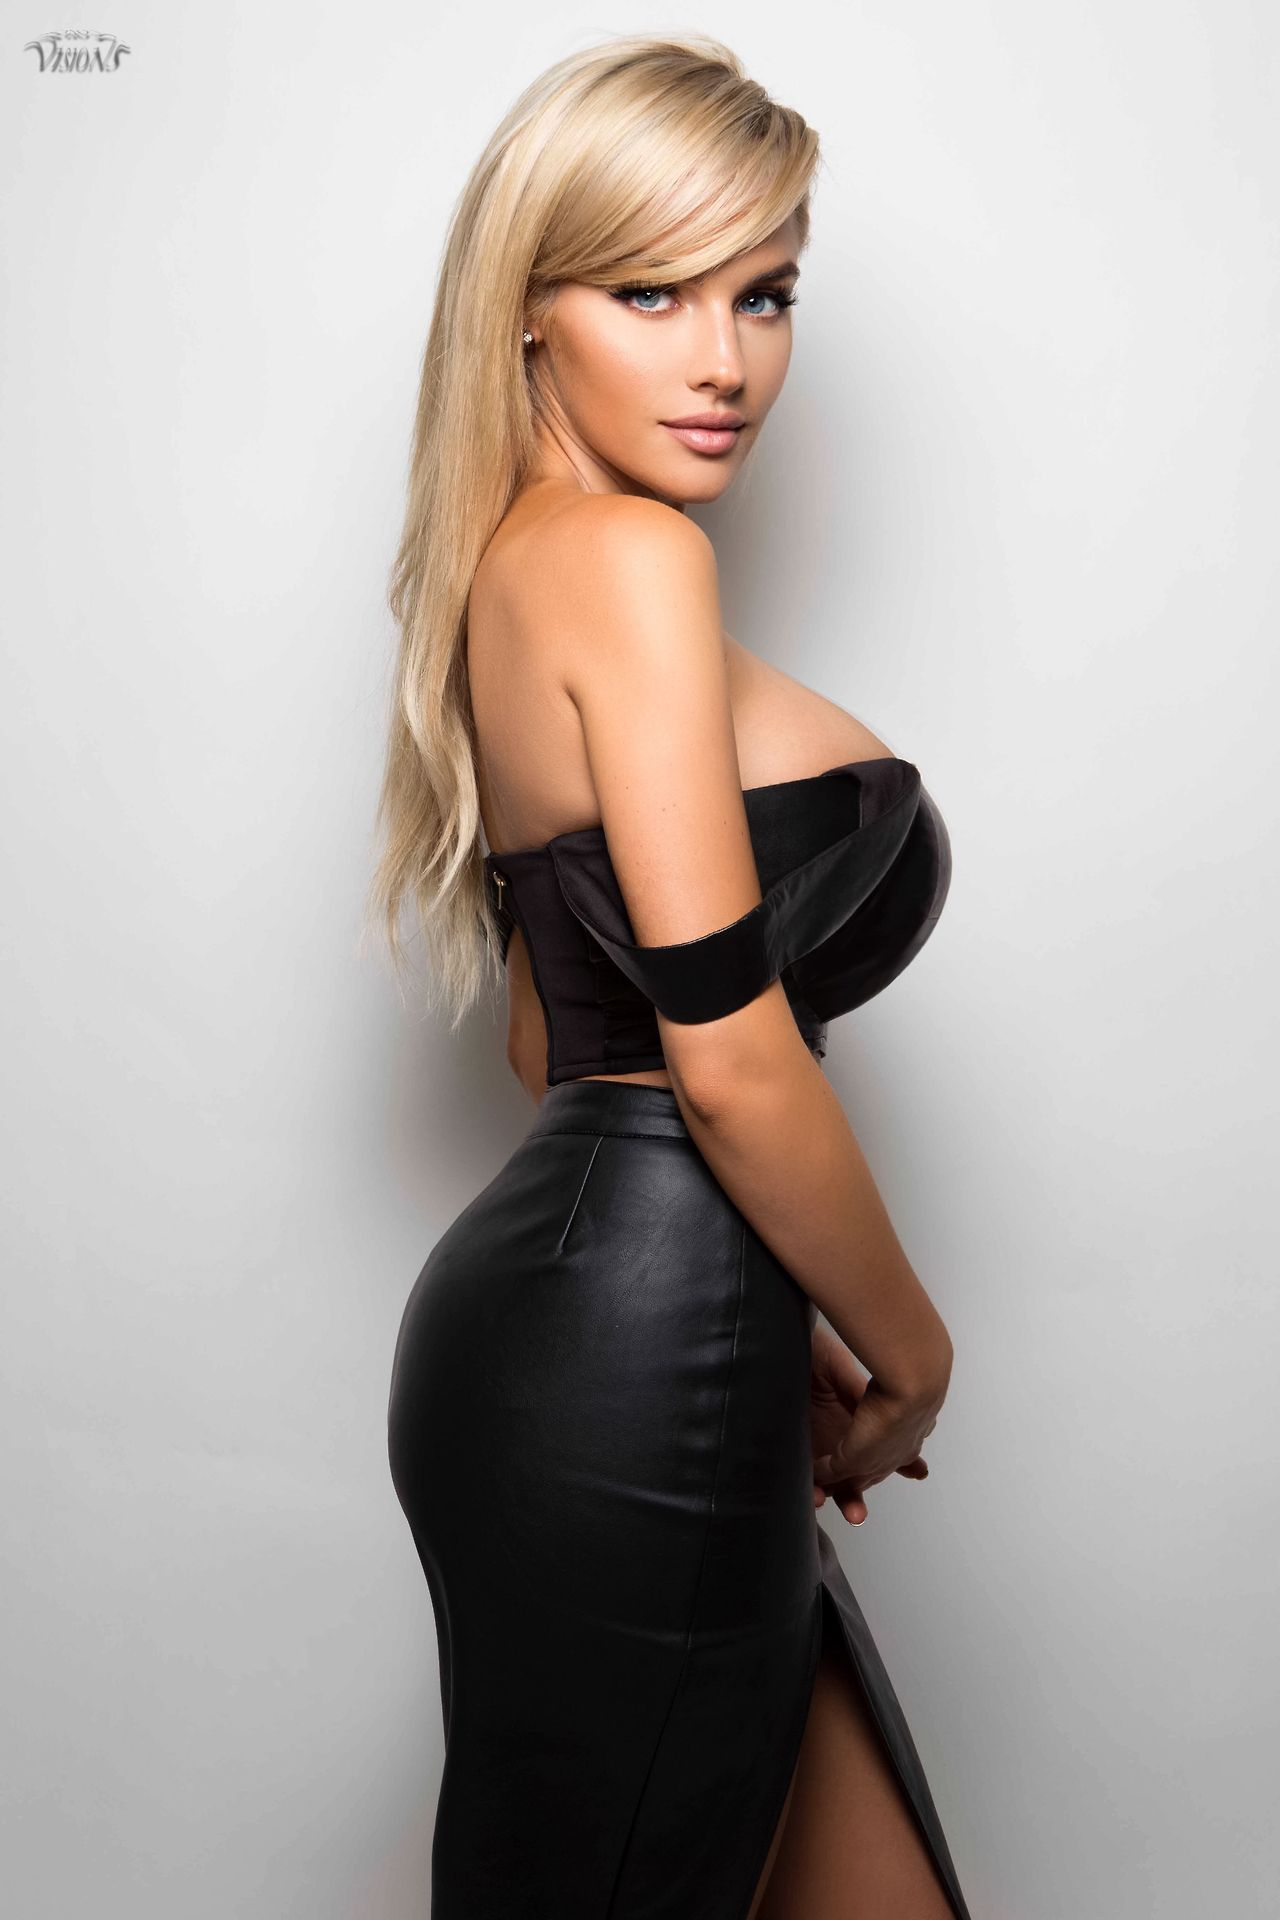 Rascal pick - Jean Watts - Busty - Breast Expansion